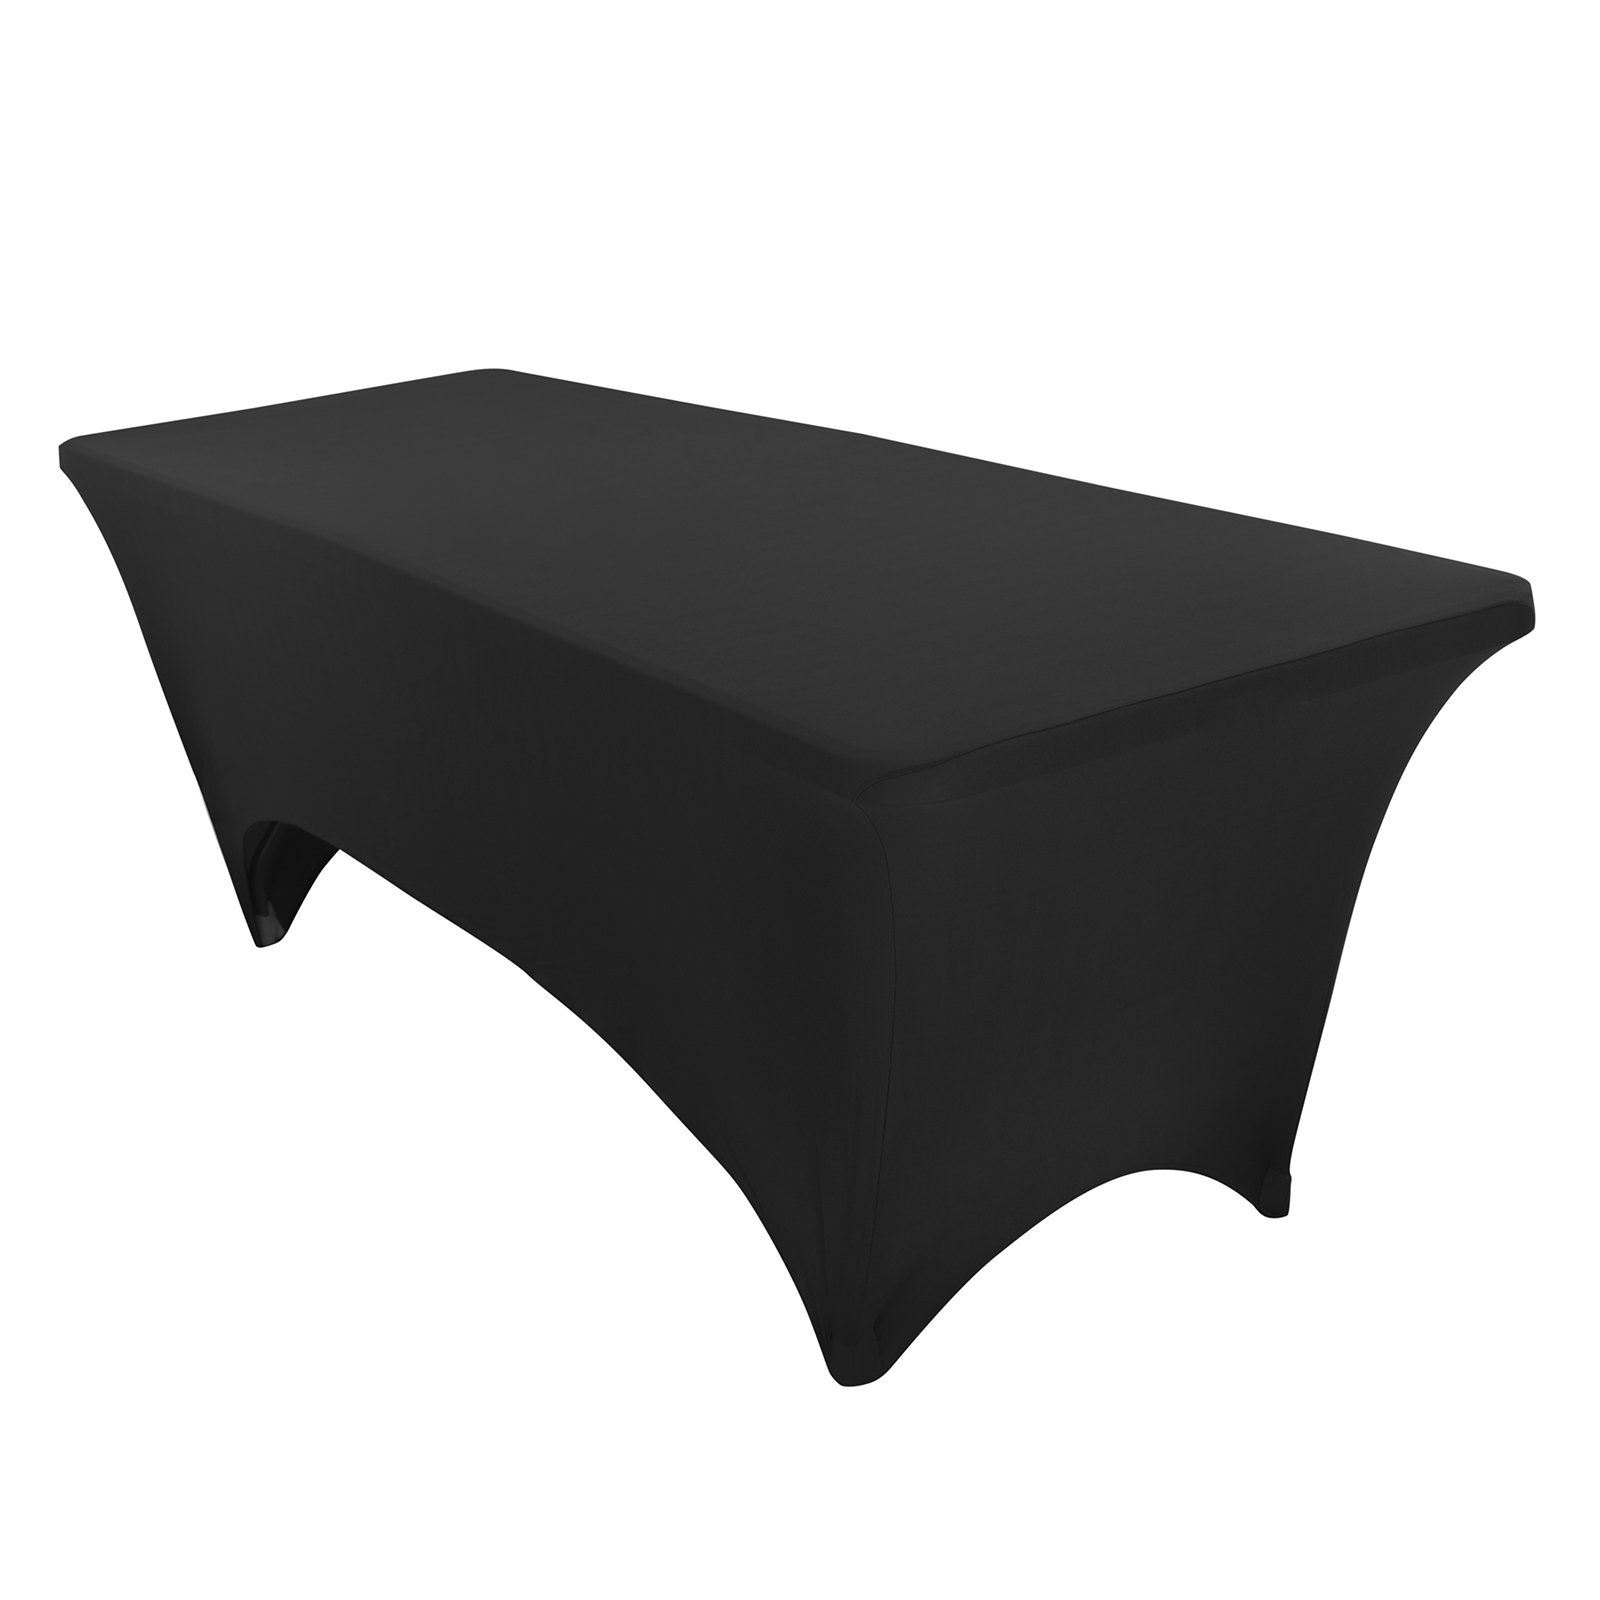 VEEYOO 6 Feet Rectangular Polyester/Spandex Stretch Table Cover Tight Fitted Tablecloth for Wedding Party Banquet Trade Show, Black